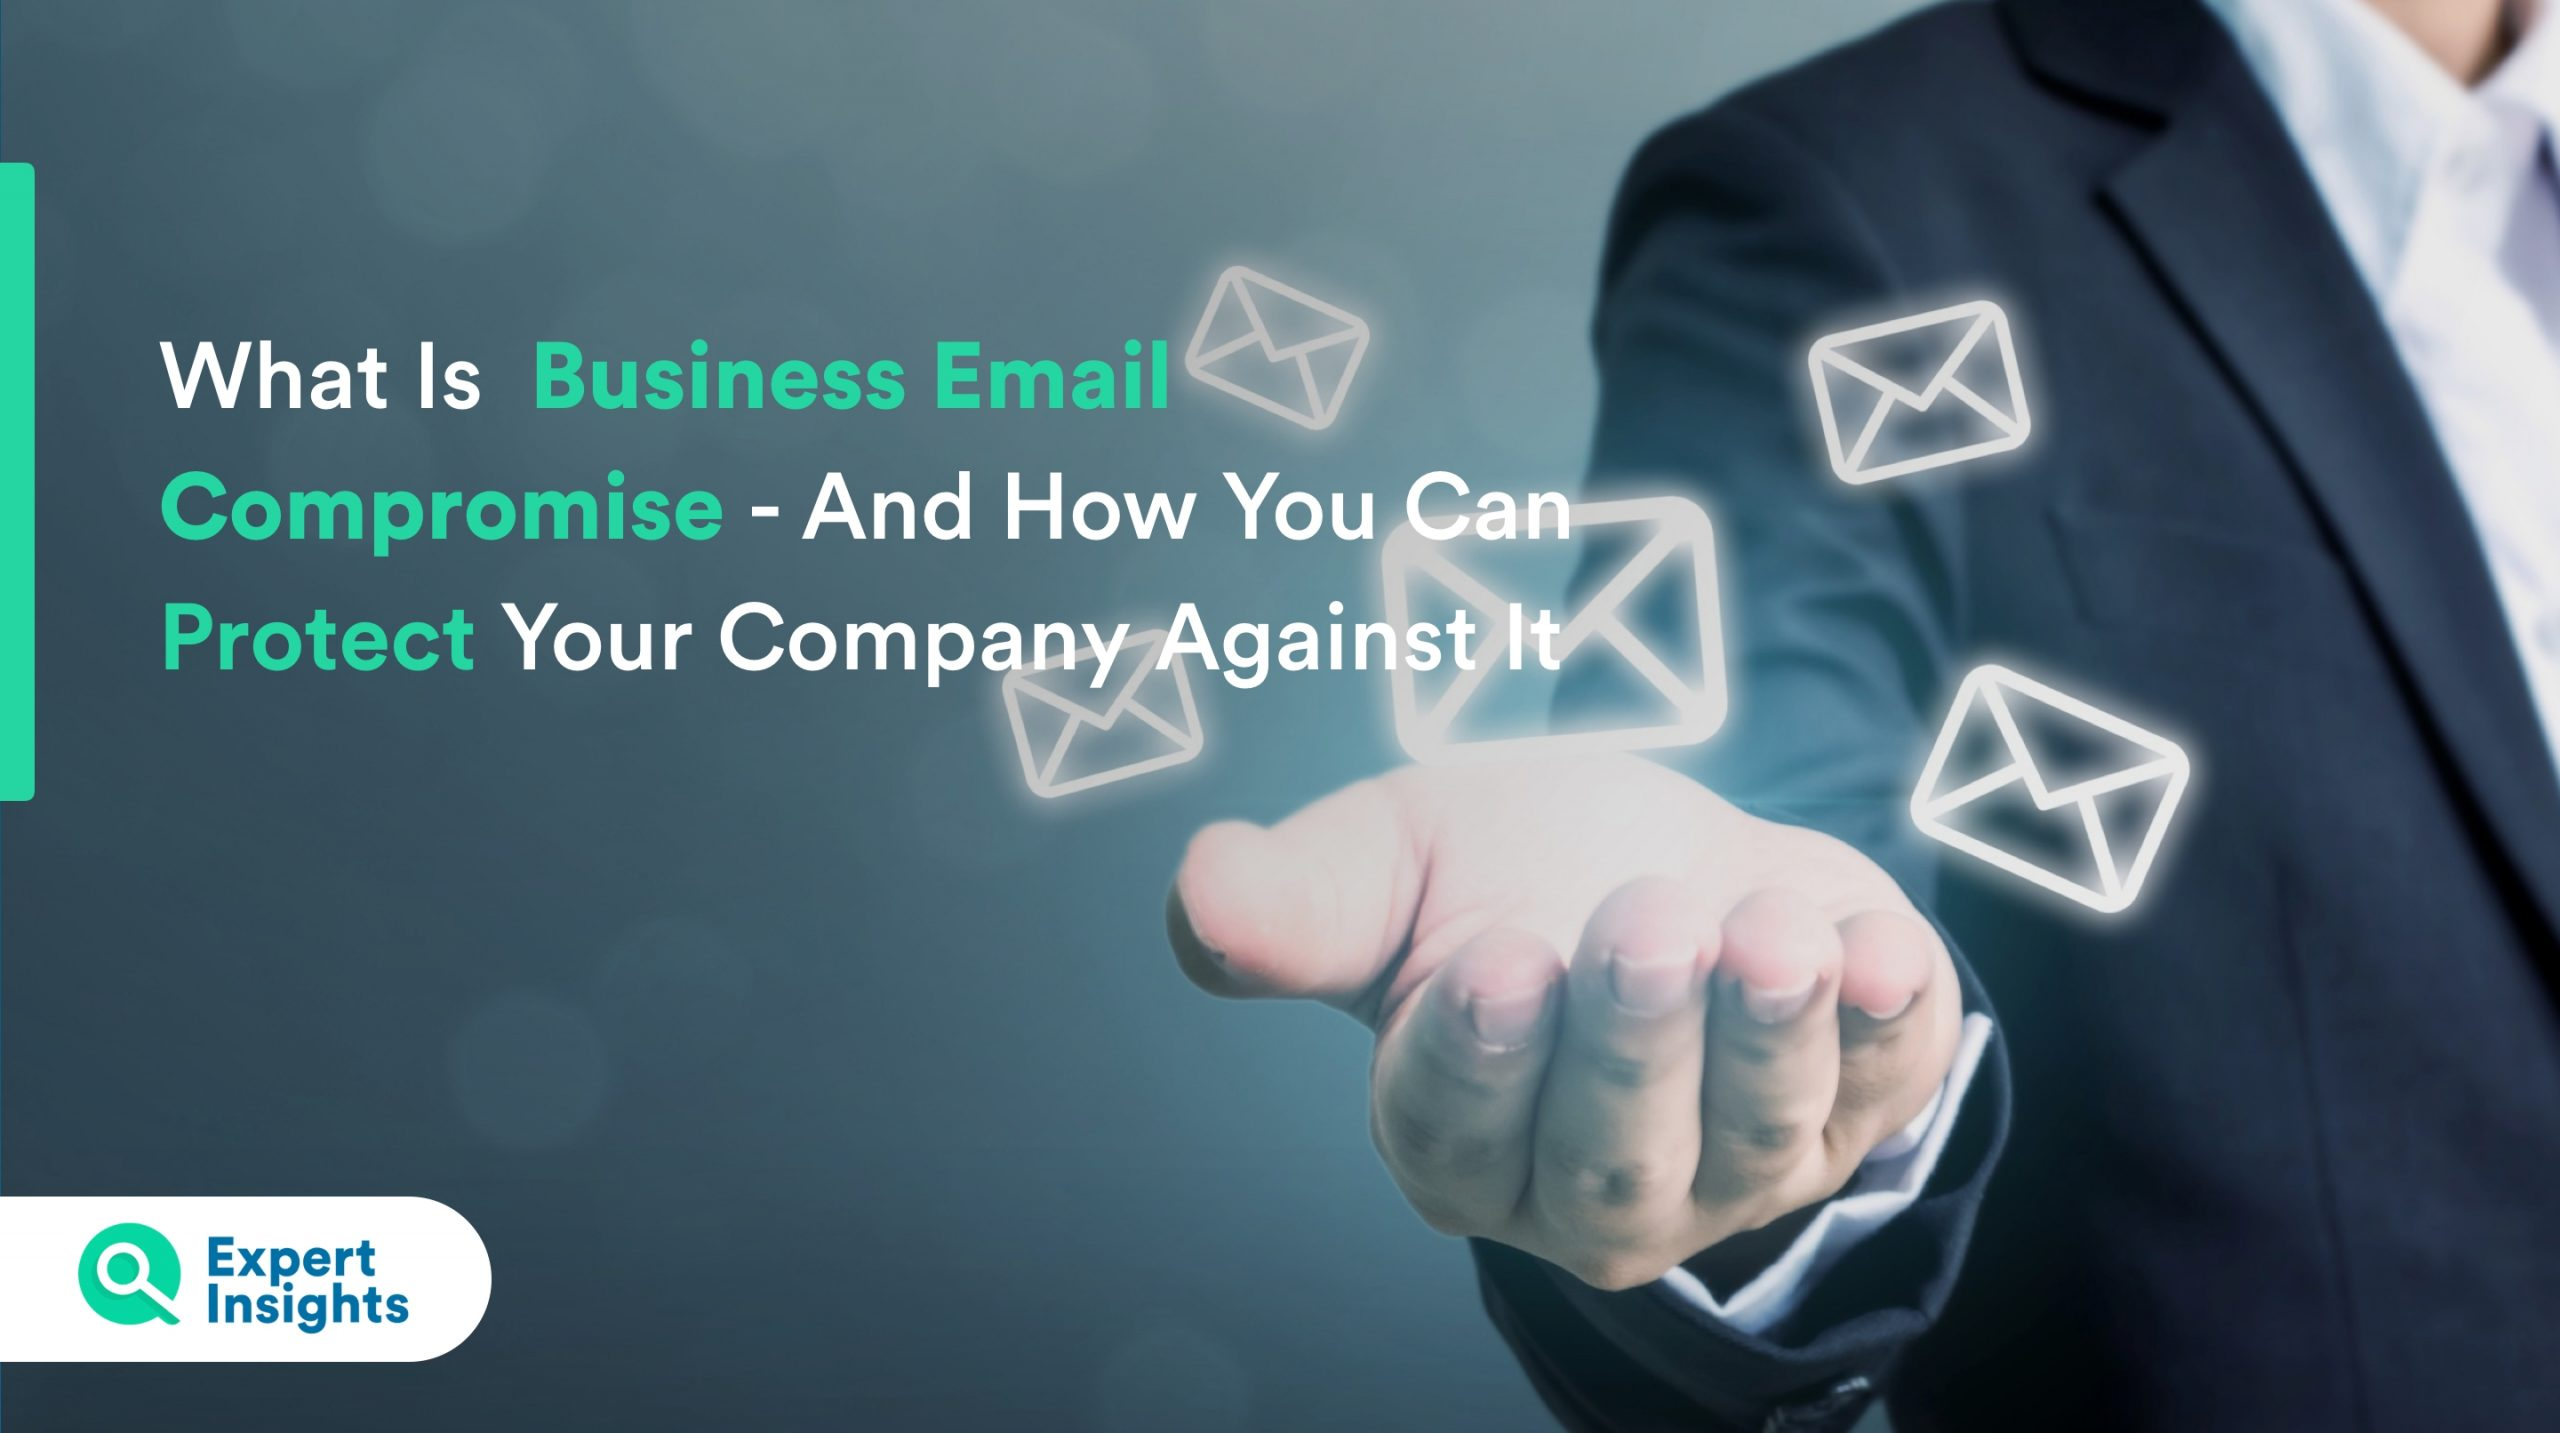 Expert Insights Business Email Compromise